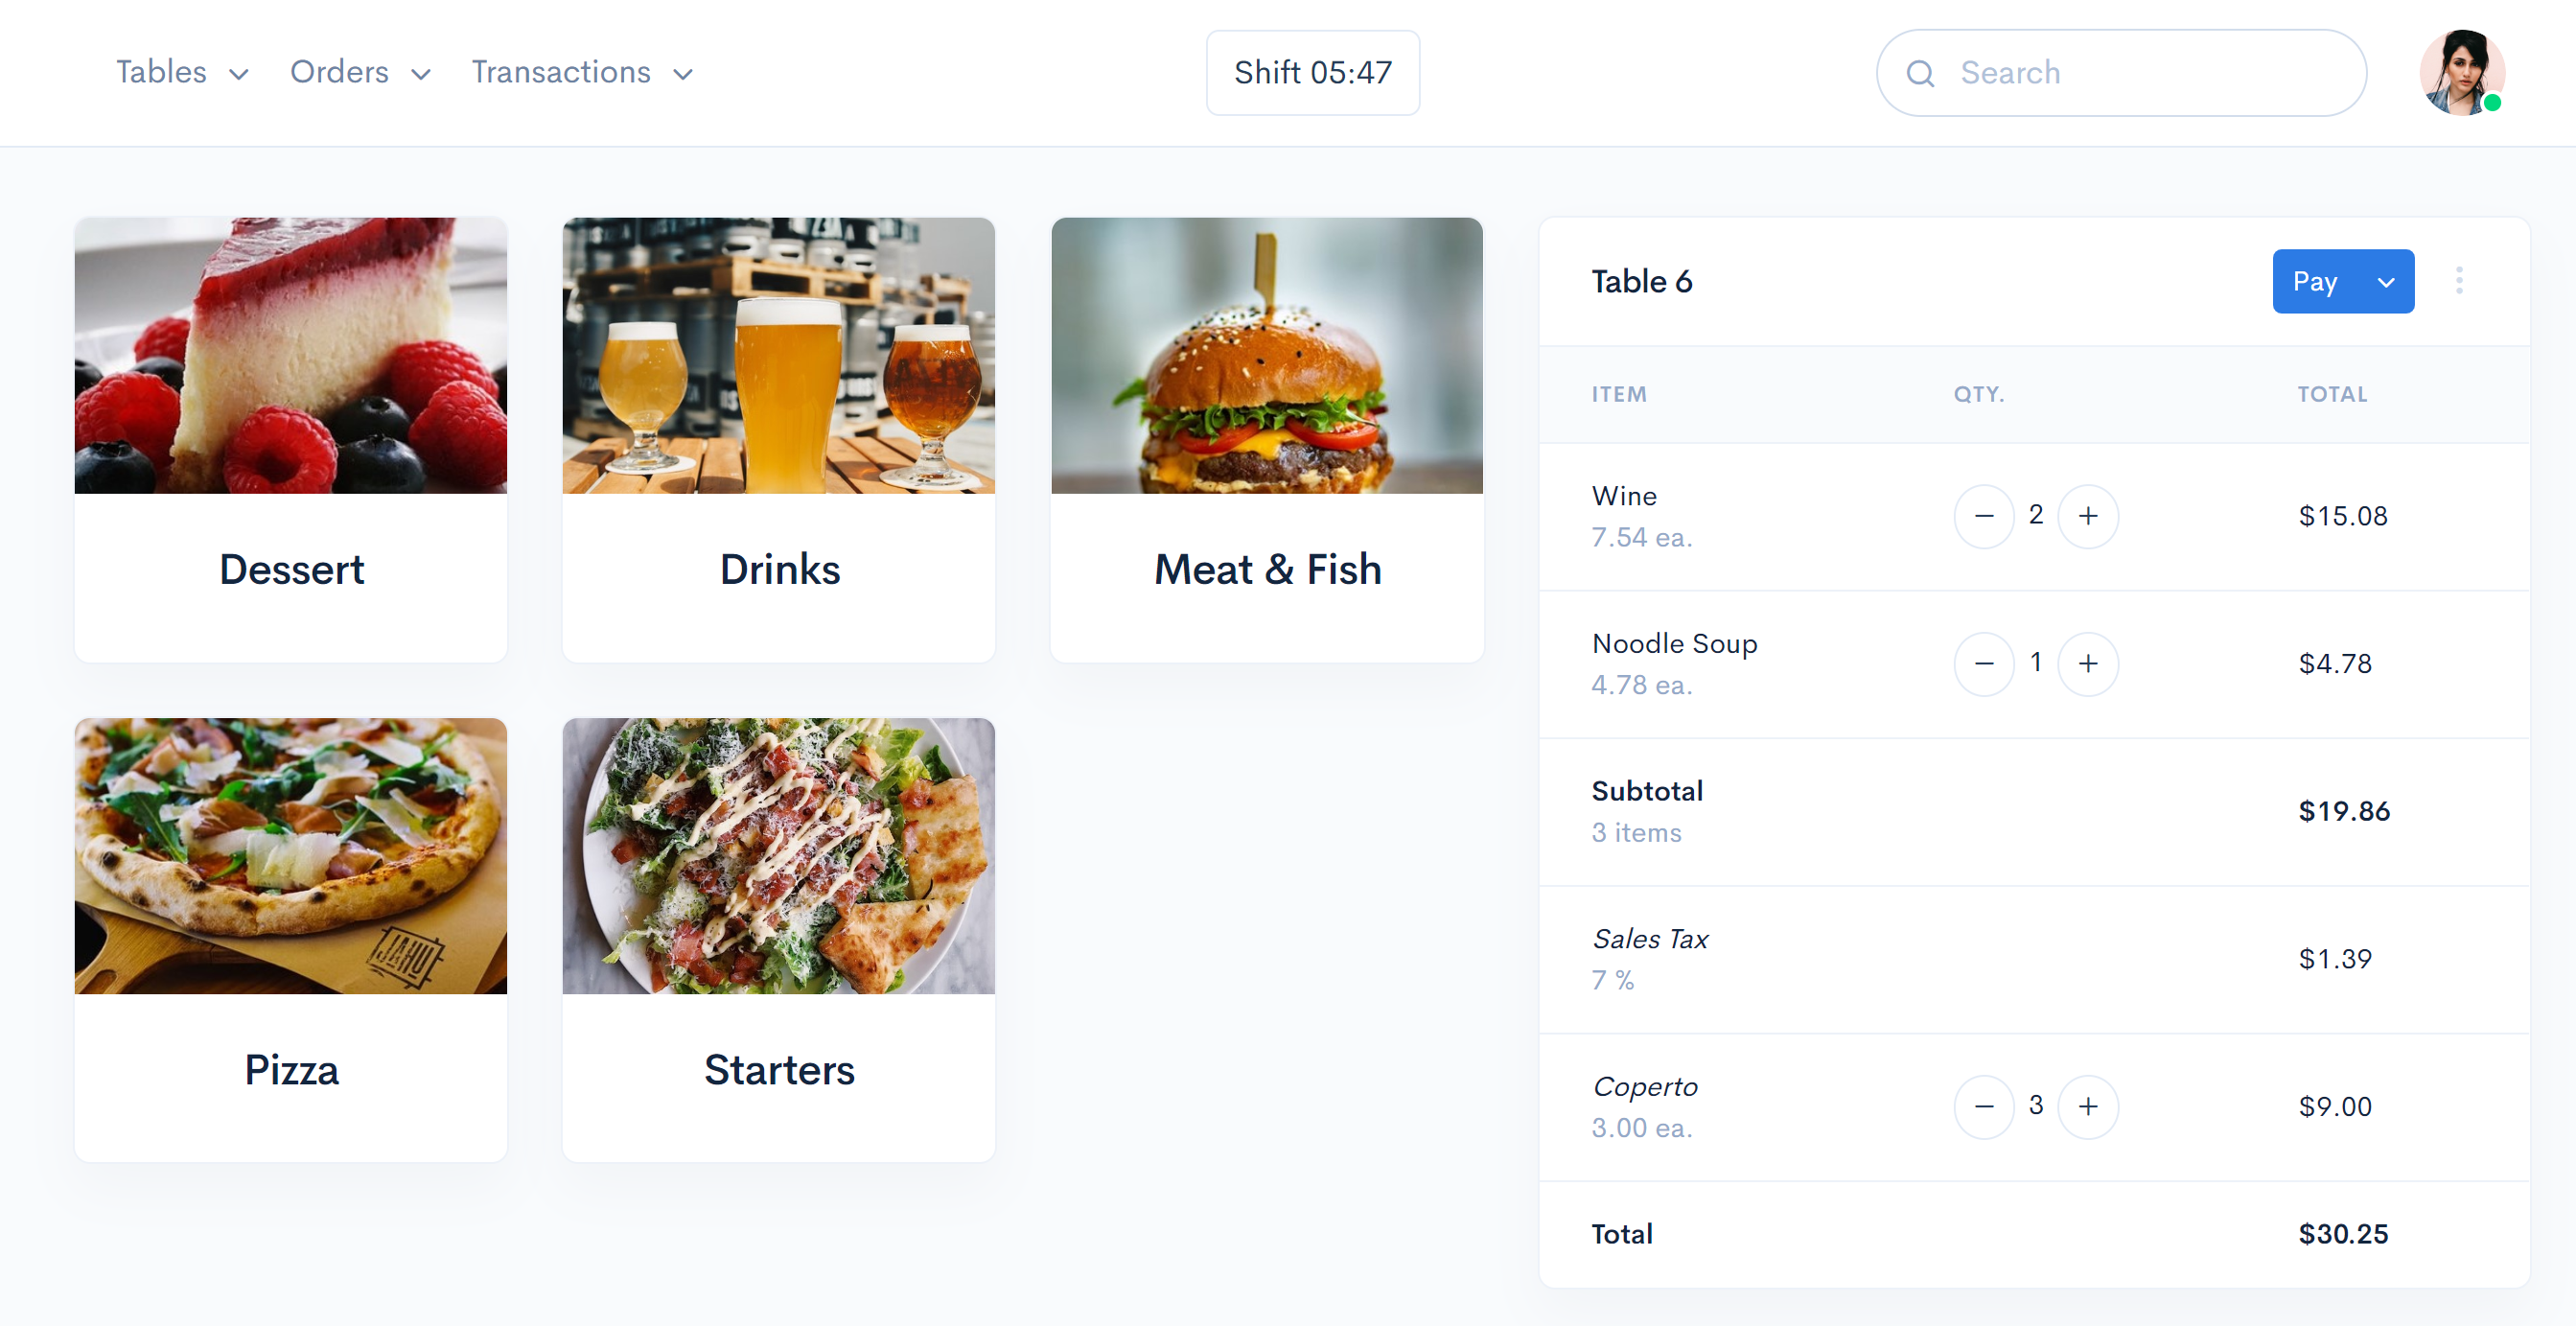 Restaurant Payments Processing by Atavoli Restaurant Point of Sale for Restaurants, Bars, Cafes, Bistros., Point of Sale for Restaurants, Pizza Restaurants, Bars, Cafes, Bistros, Diners, Bakeries, Food Trucks, Hotels, Bed and Breakfasts, Resorts, Night Clubs